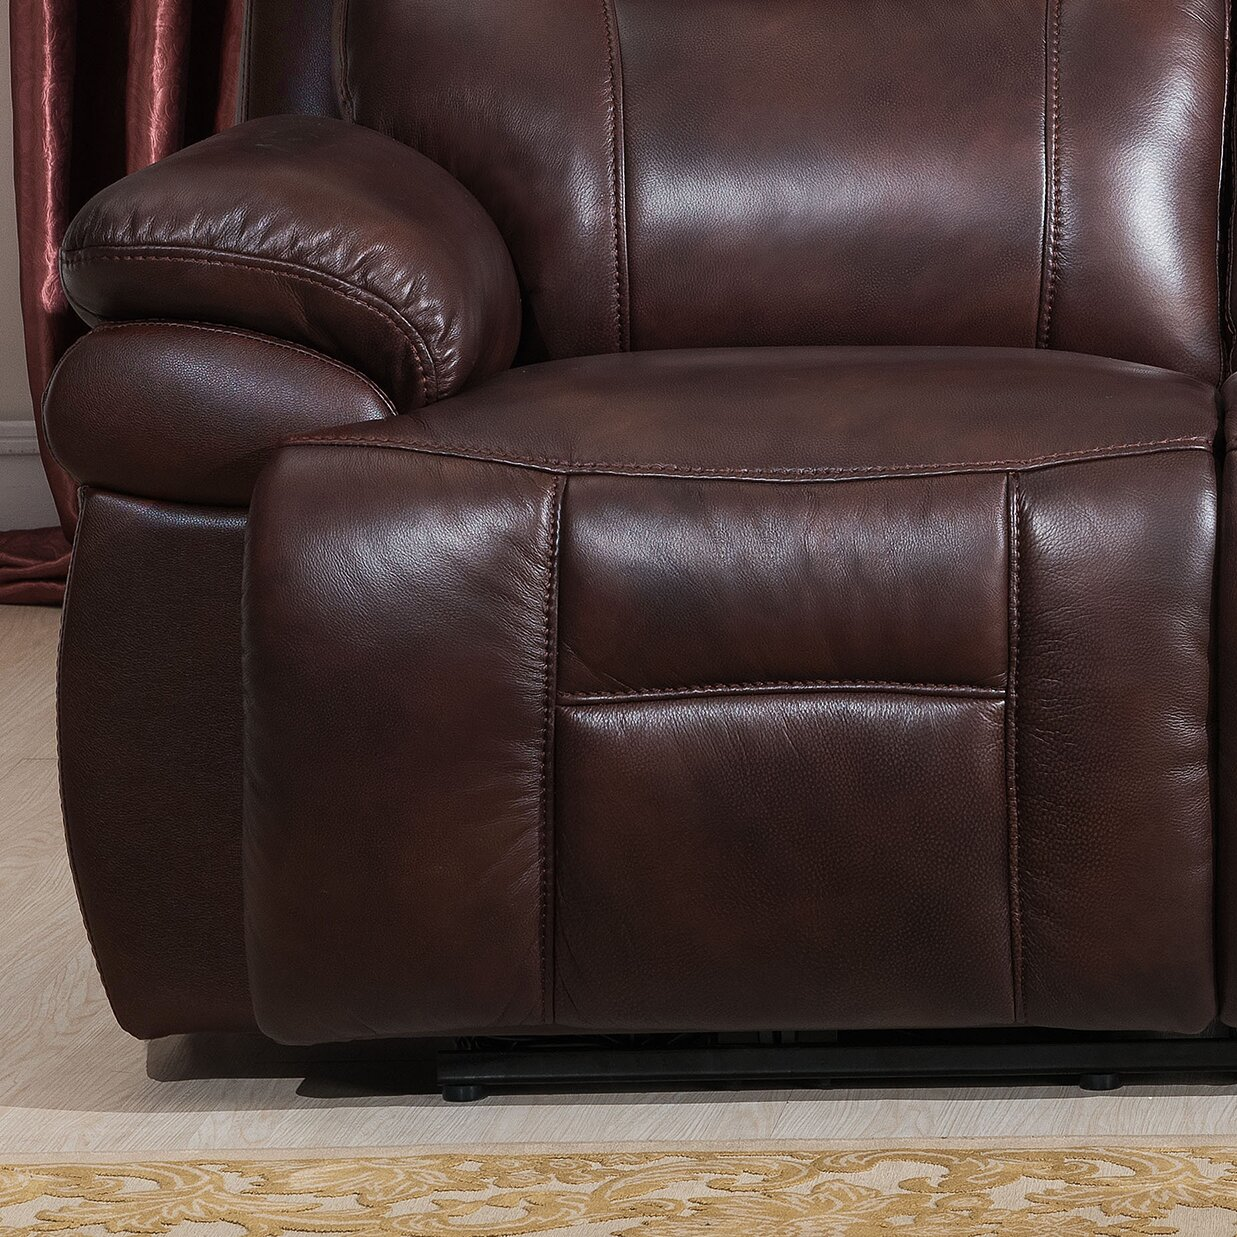 Amax Sanford 2 Piece Leather Power Reclining Living Room Set With Usb Ports Power Headrests